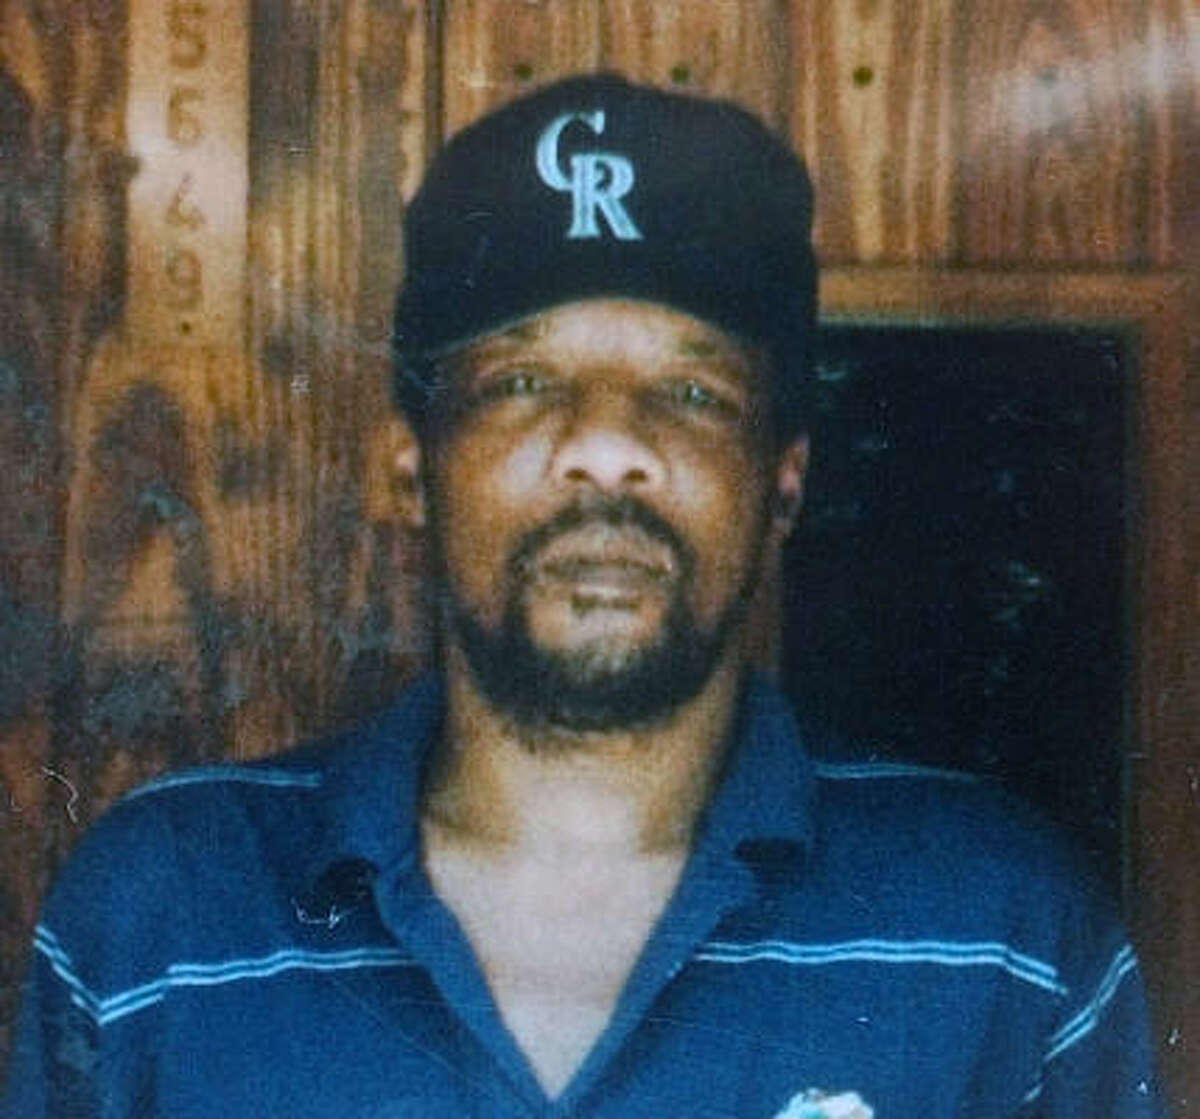 Three white men used a chain to tie James Byrd Jr.'s ankles to a truck's rear bumper, zigzagging him for 3.08 miles